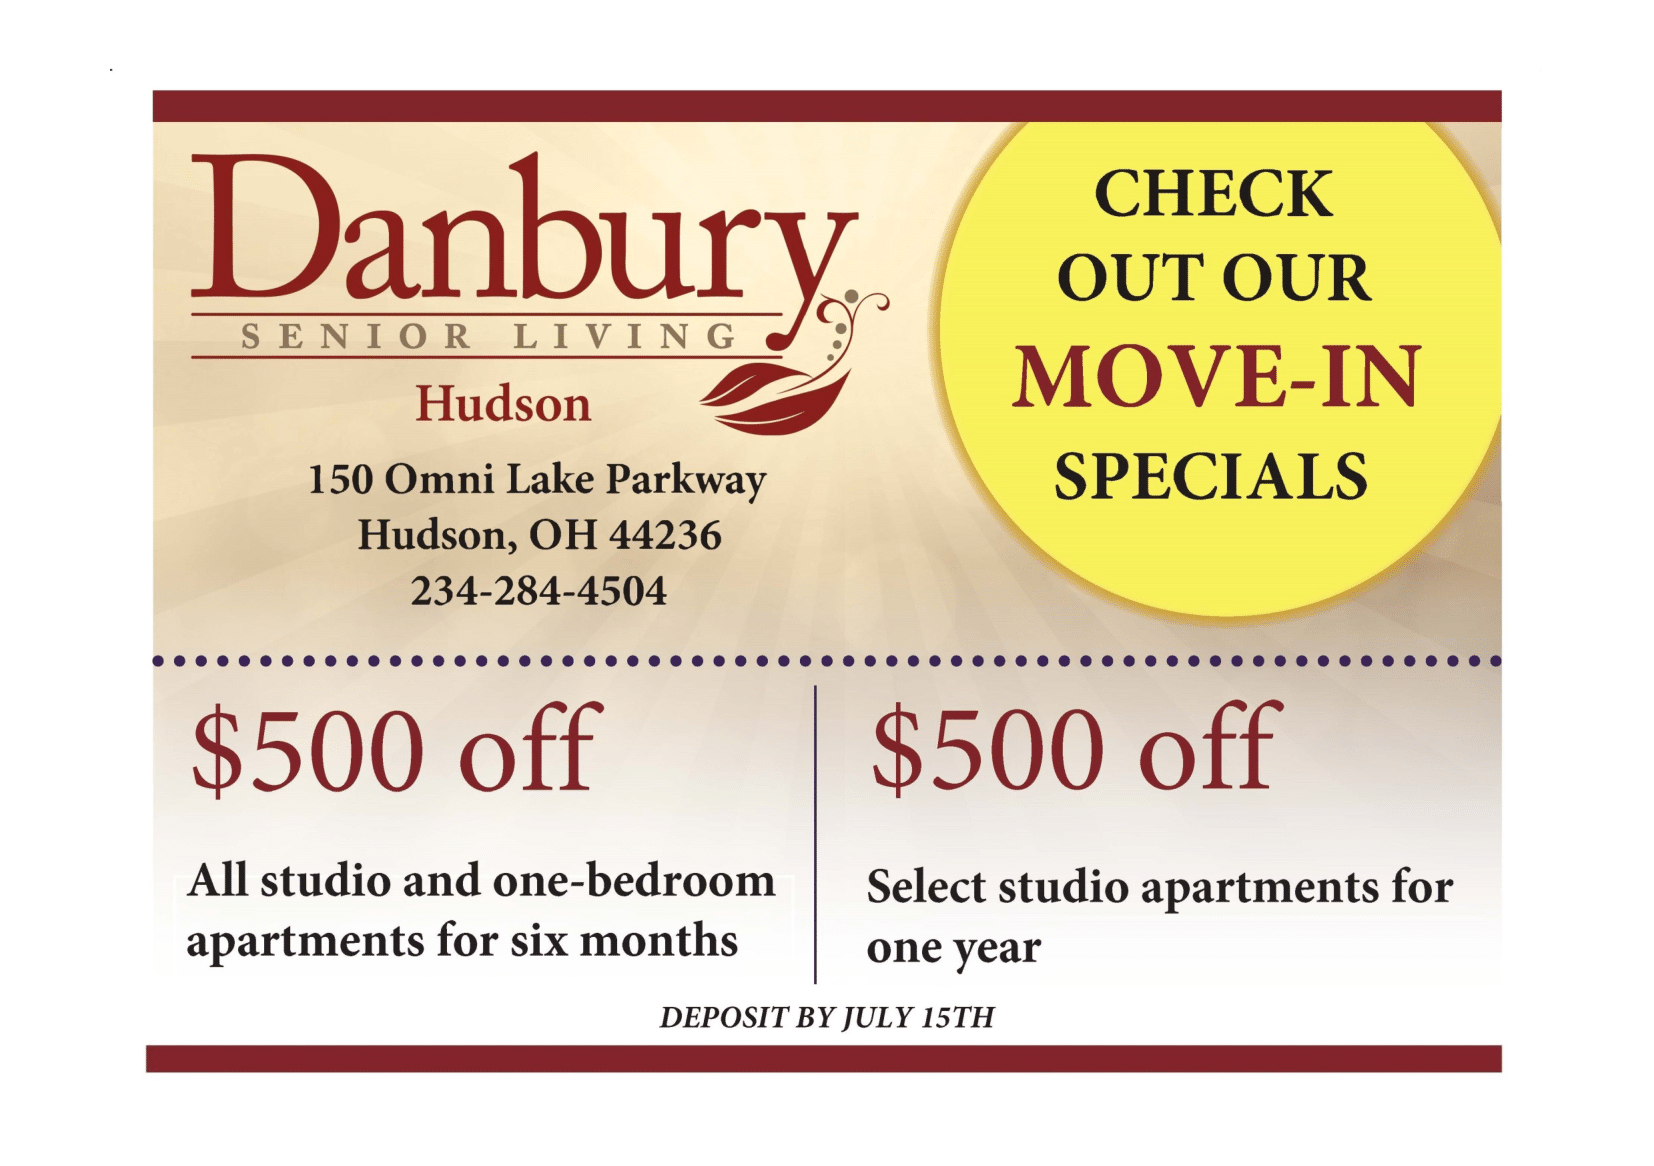 Move-In Specials Available Until July 15th